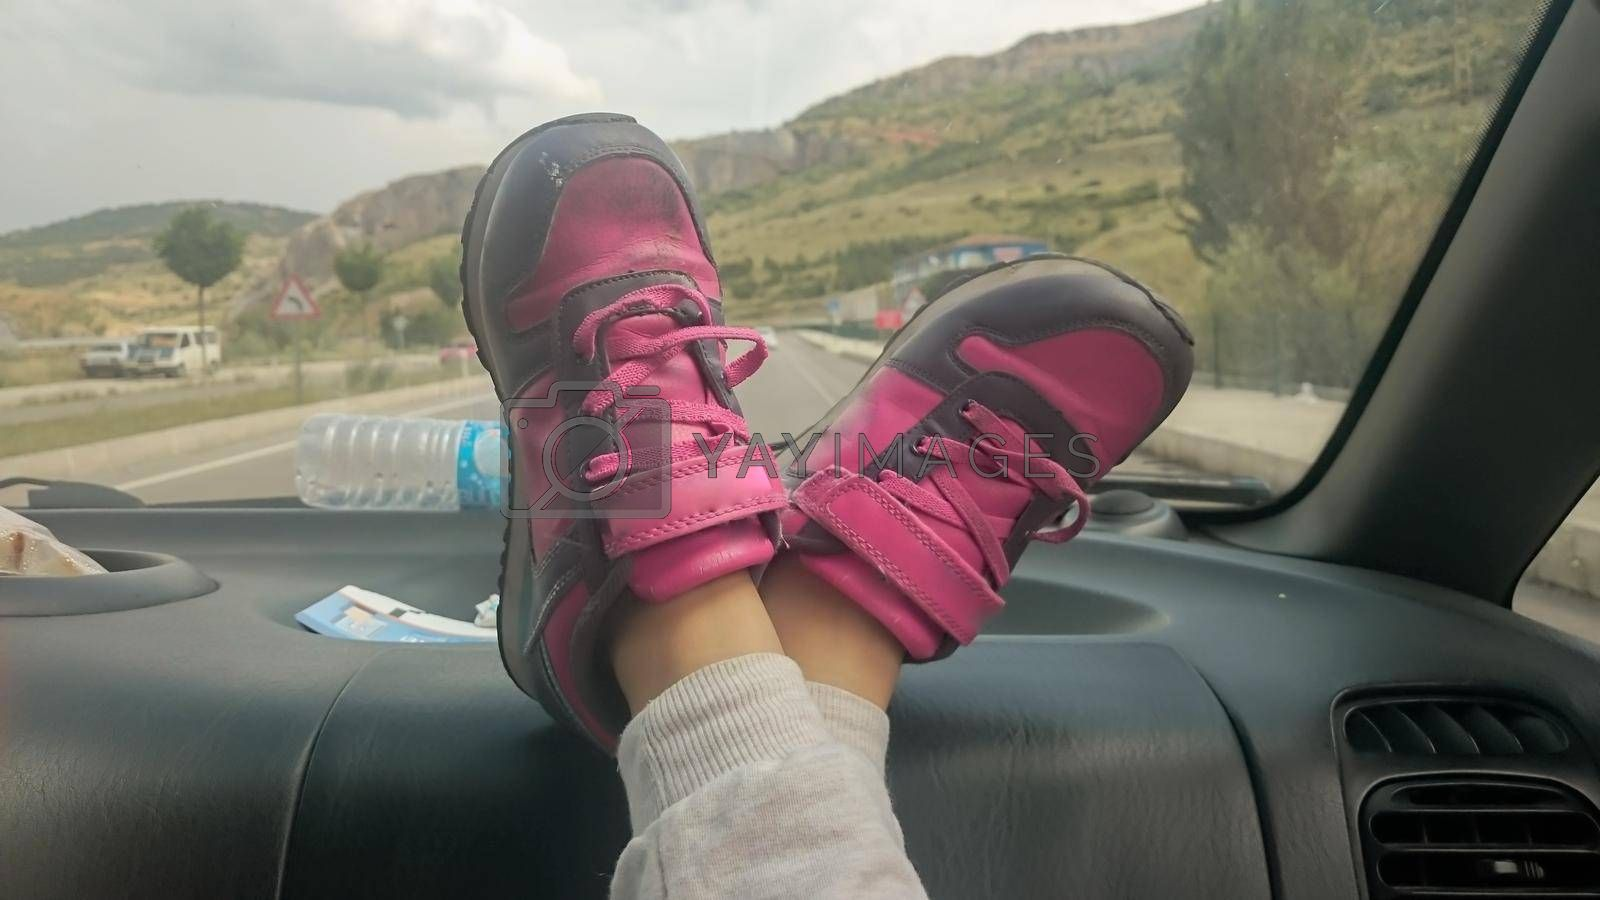 It depicts two pink shoes in a car in front of car window